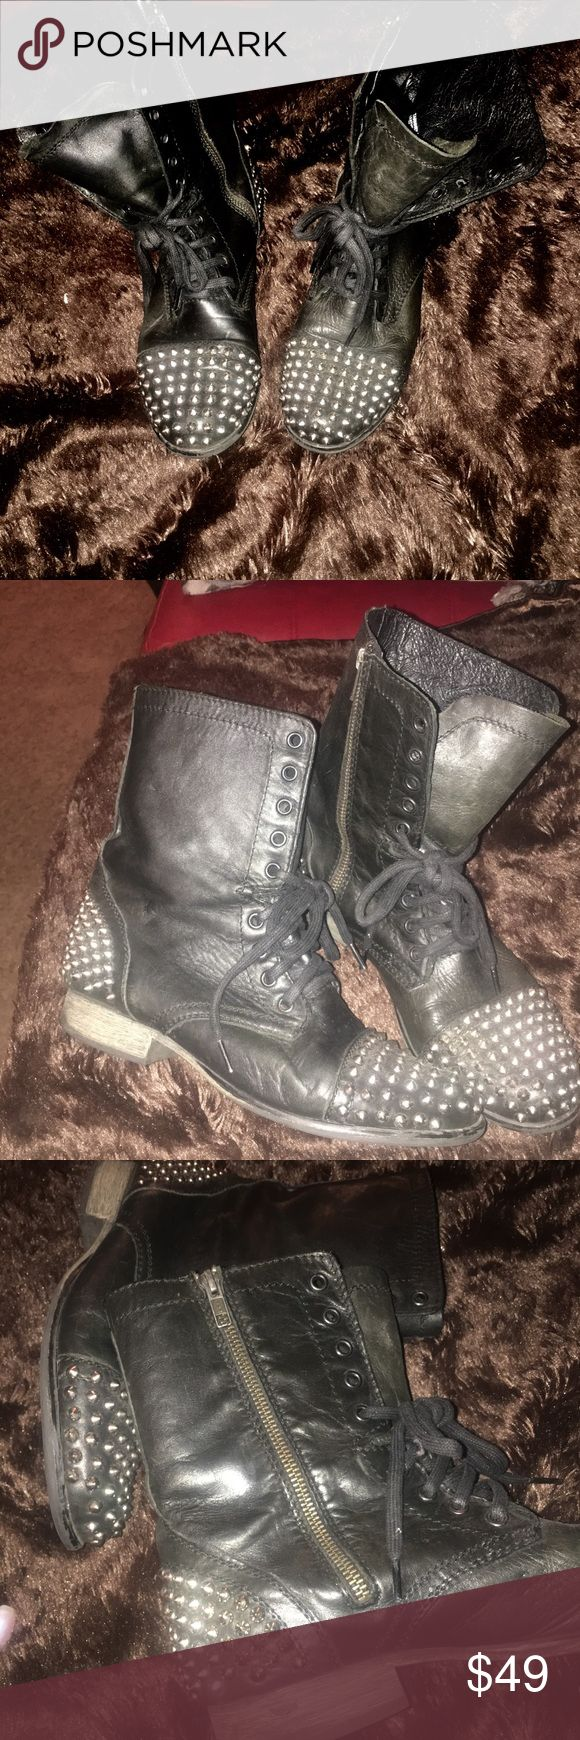 Studded combat boots Black studded combat boots very comfortable, stylish boots. These boots can be worn slouchy or laced up depending on the look you're going for or style preference. Size 8.5 (runs slightly big) Steve Madden Shoes Combat & Moto Boots